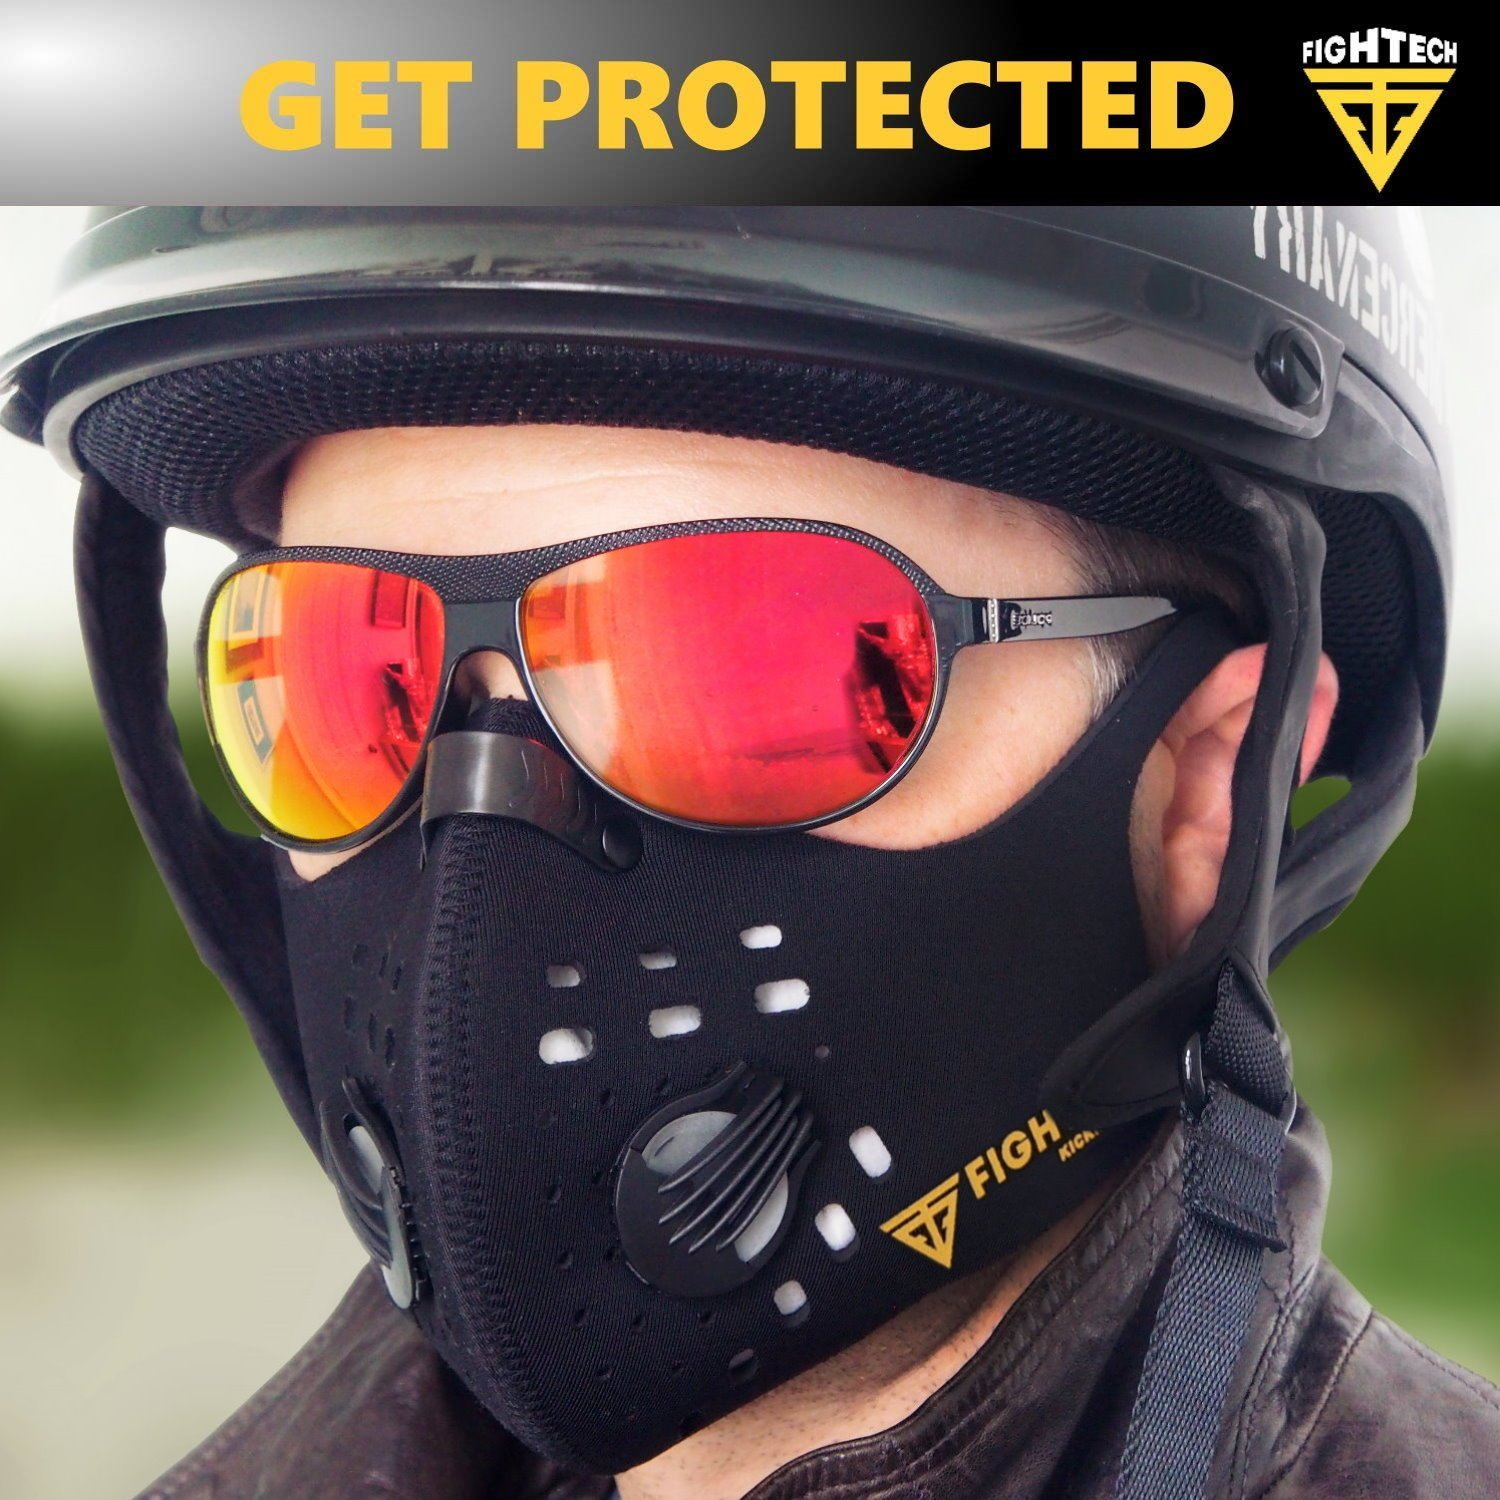 Anti-Pollution Dustproof/Dust Mask with 2 Valves and 4 Activated Carbon N99 Filters. Filtration of Exhaust Gas, Pollen Allergy and PM2.5. Cycling Face Mask for Outdoor Activities by FIGHTECH (BLK) by FIGHTECH (Image #4)